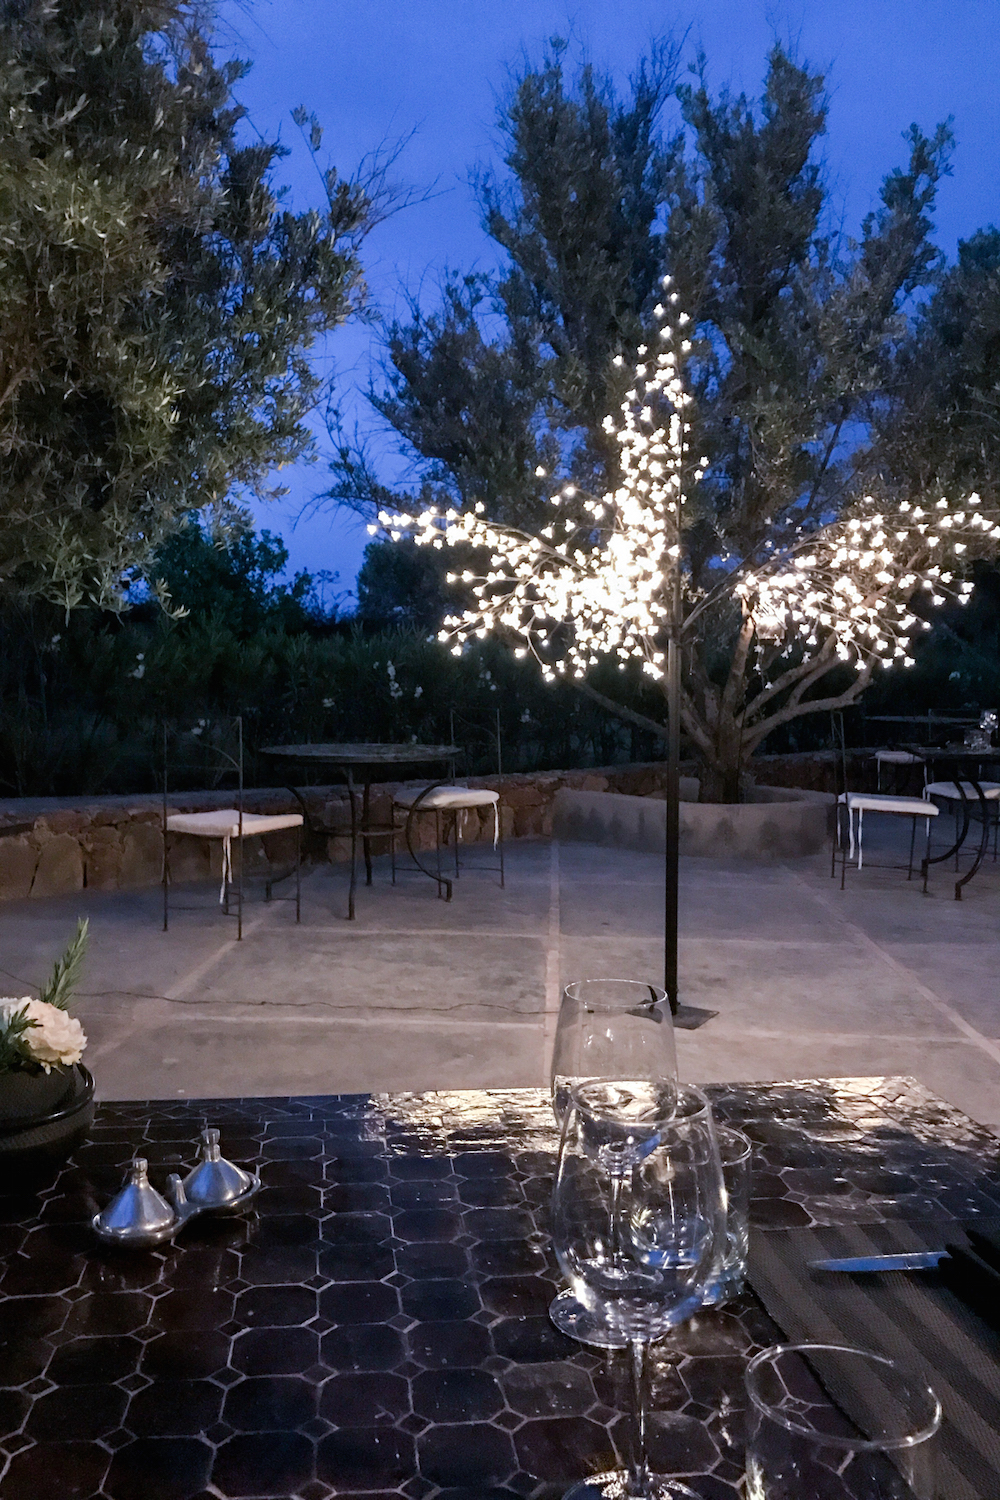 Fairy-lit trees at nighttime in the grounds of the Hotel Capaldi, Marrakech, Morocco